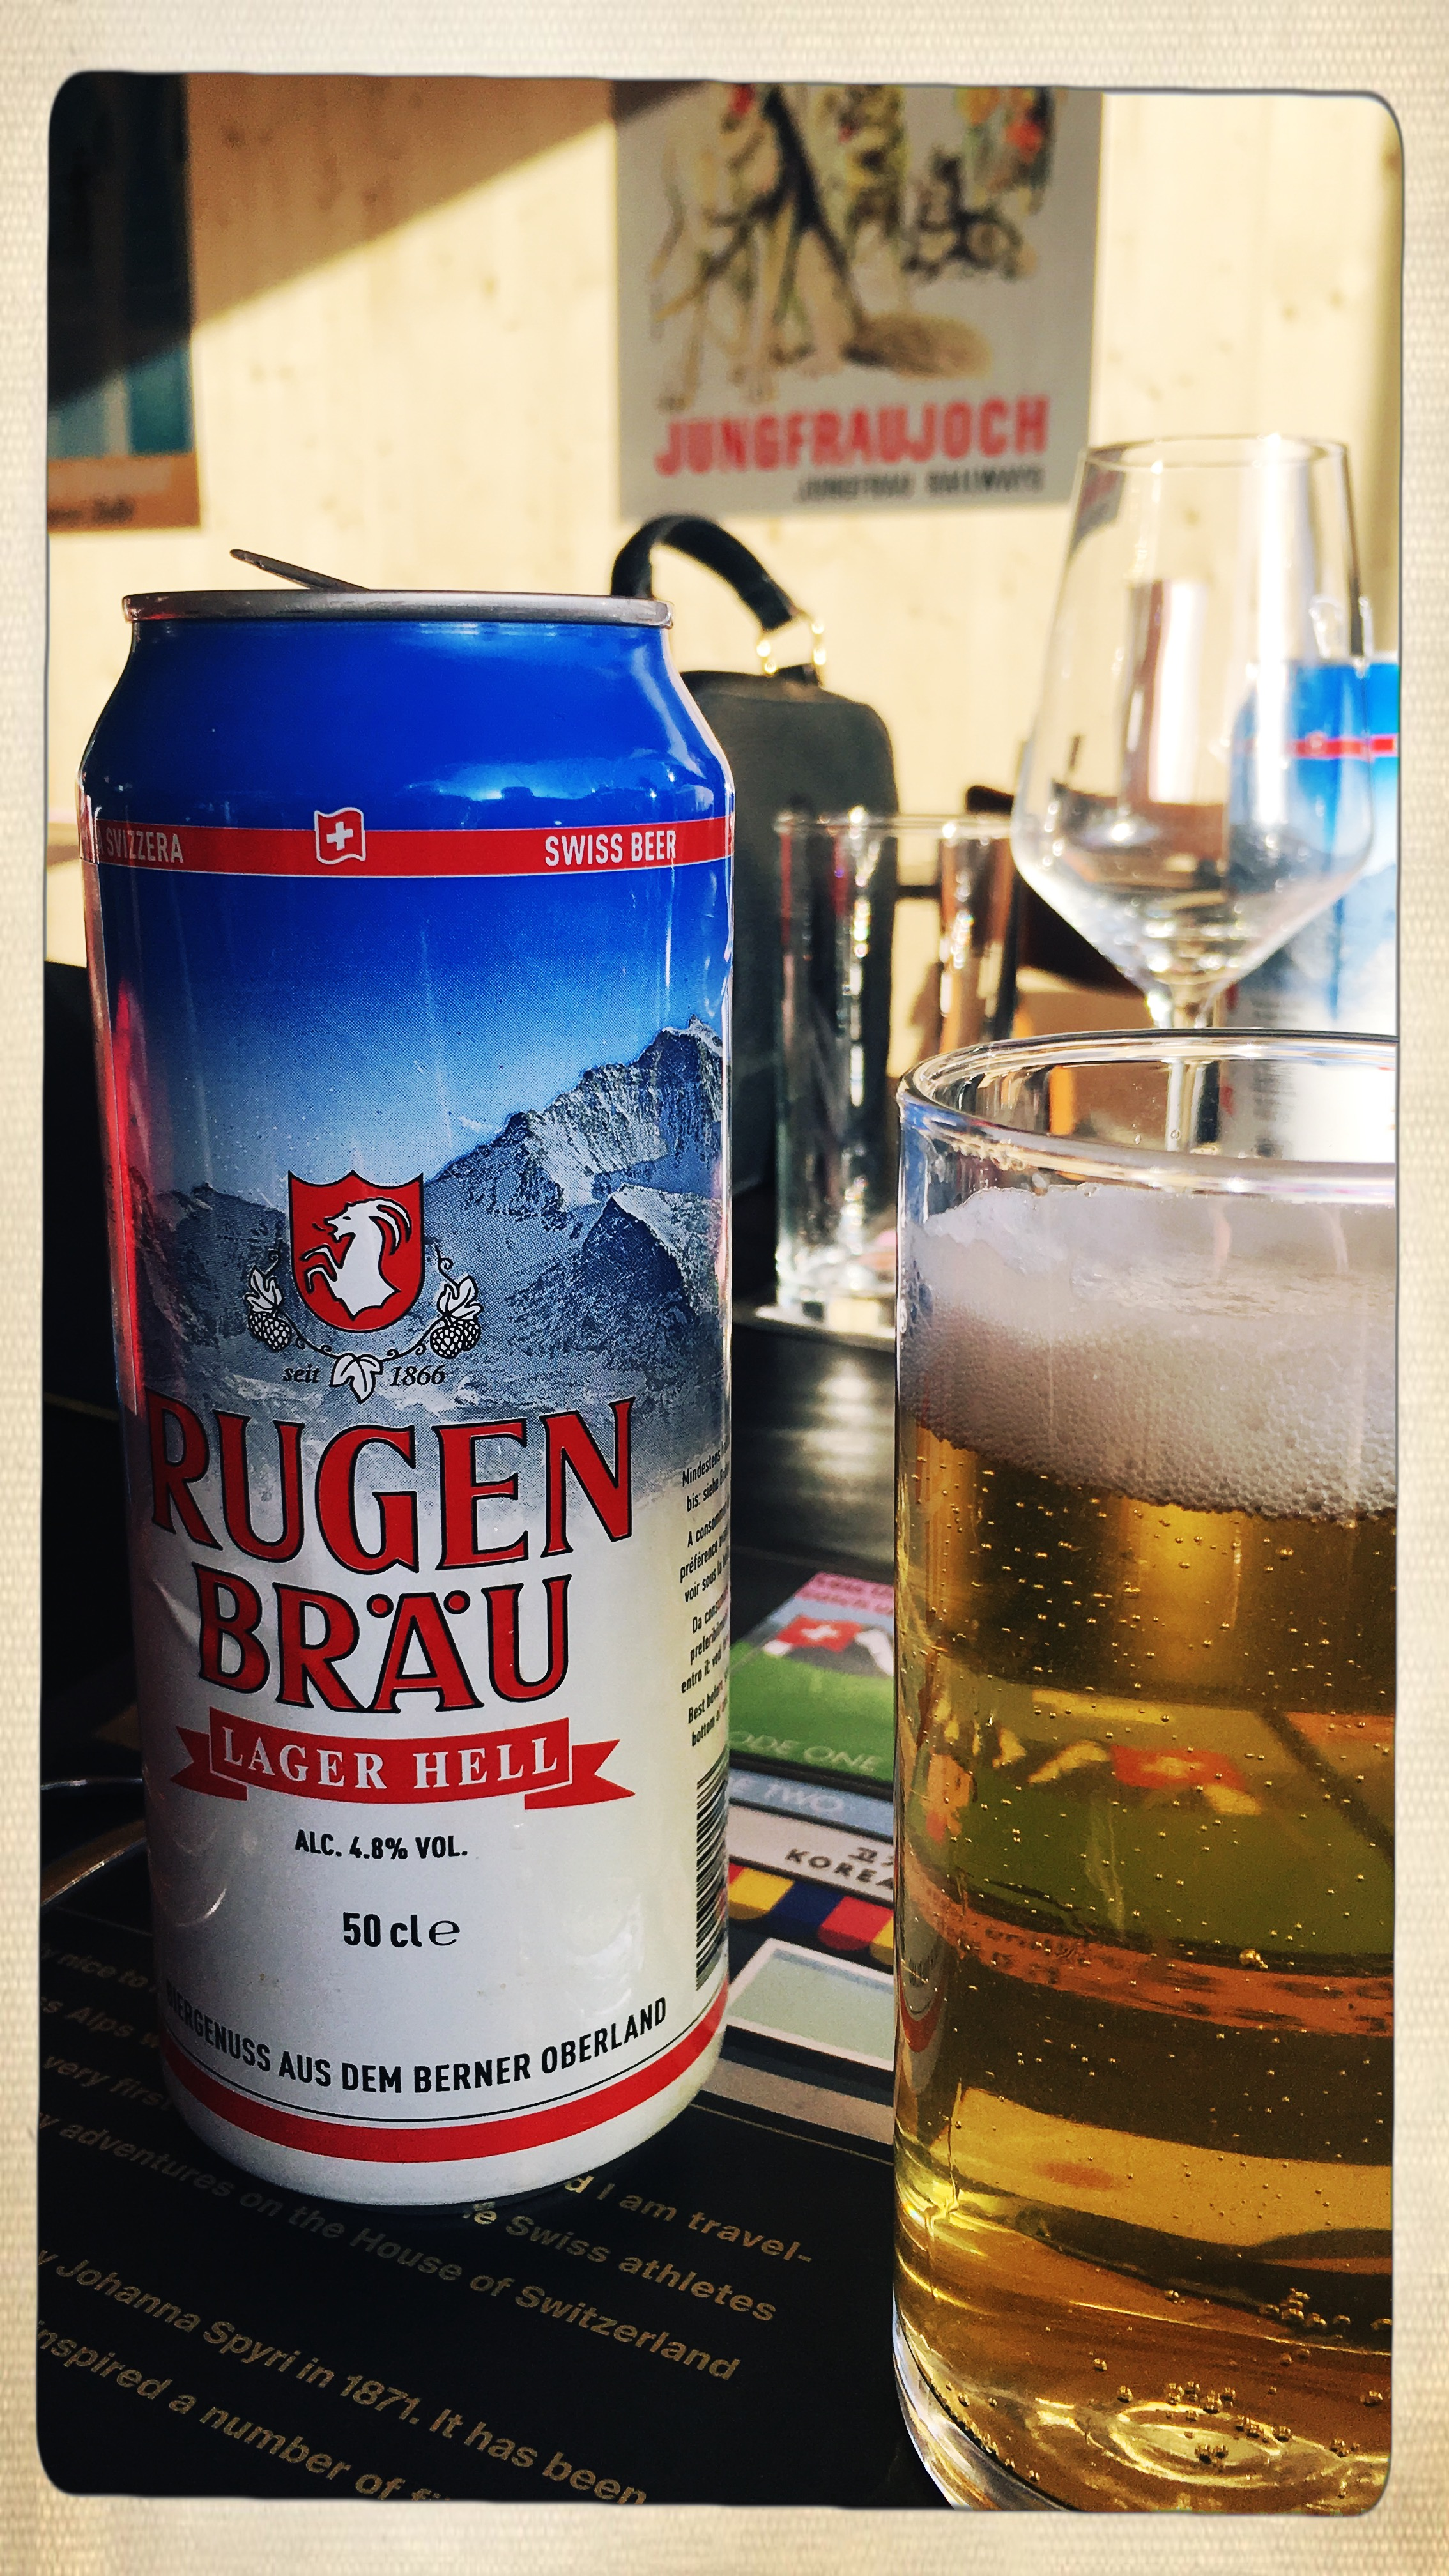 Our Swiss beer